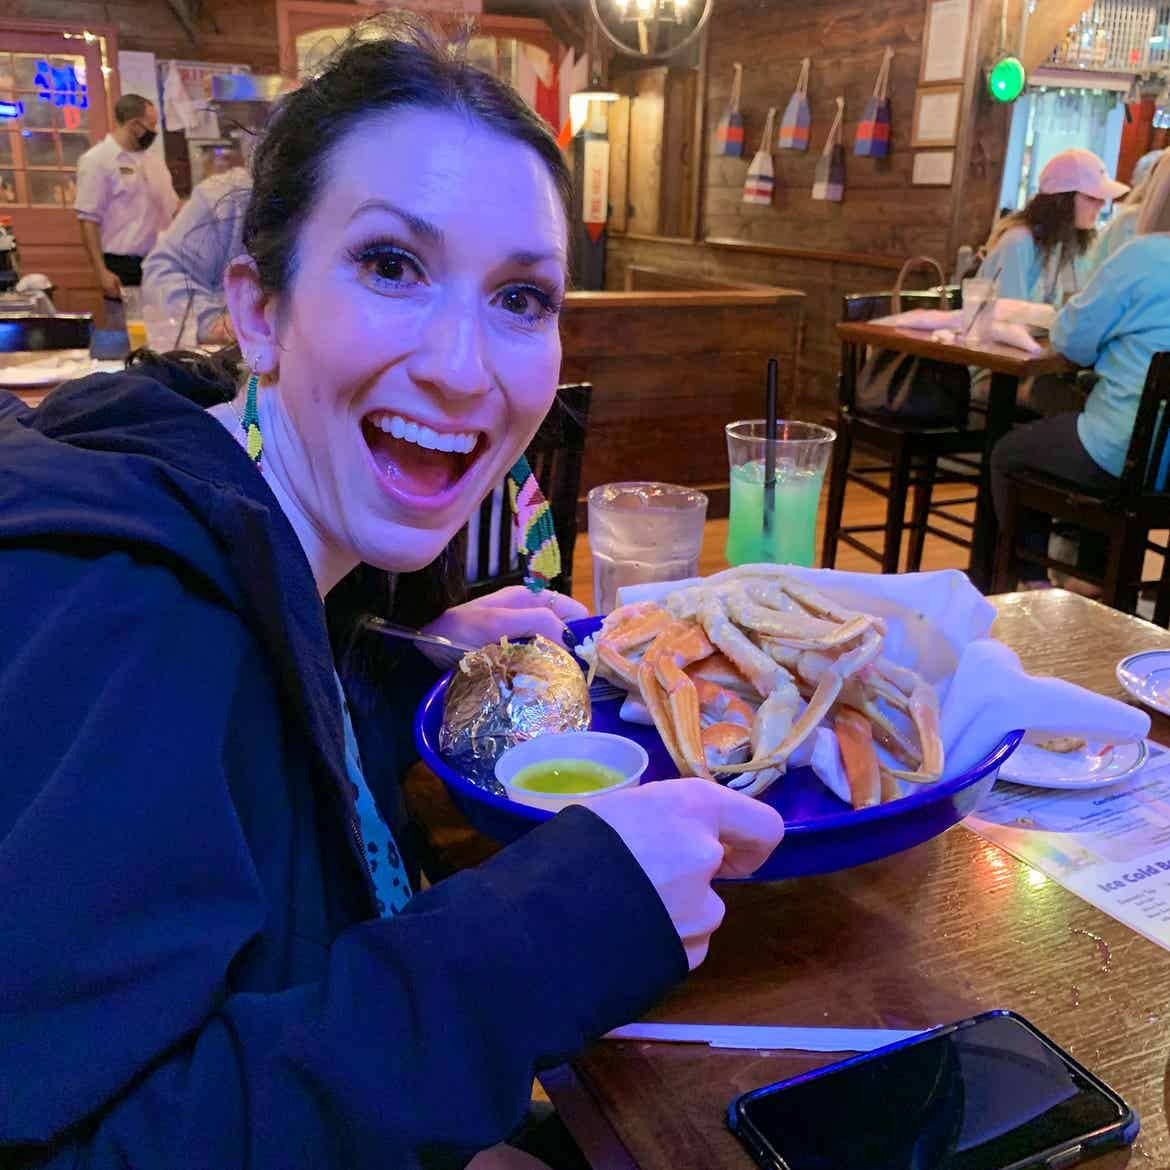 Featured Contributor, Amanda Nall's friend holds her Crab's Legs ordered at Fish Tales.